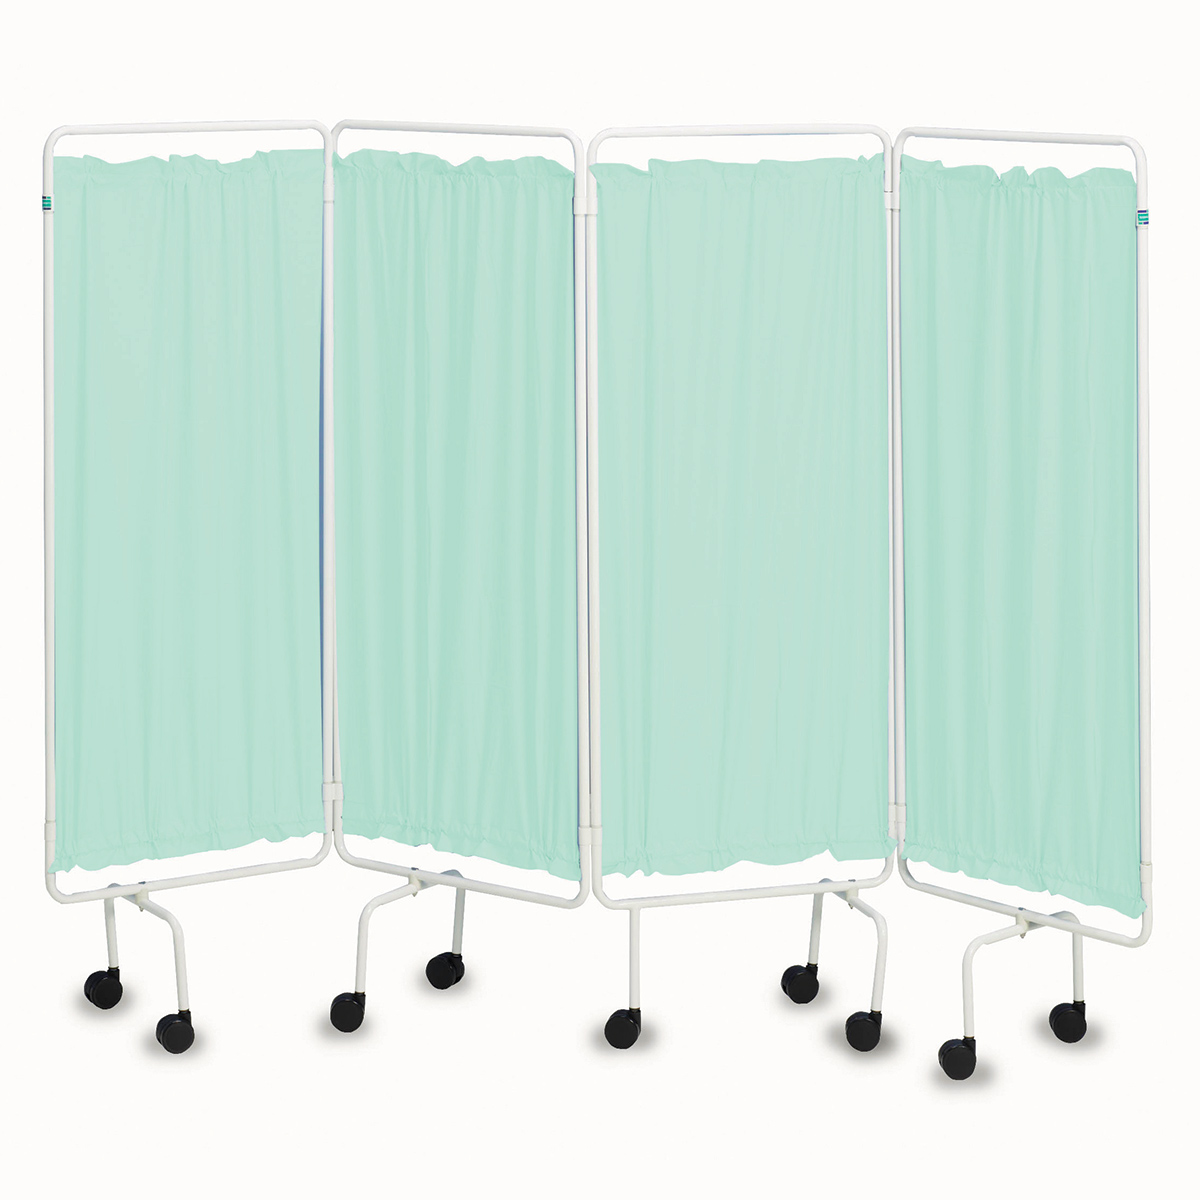 Portable Folding Screen